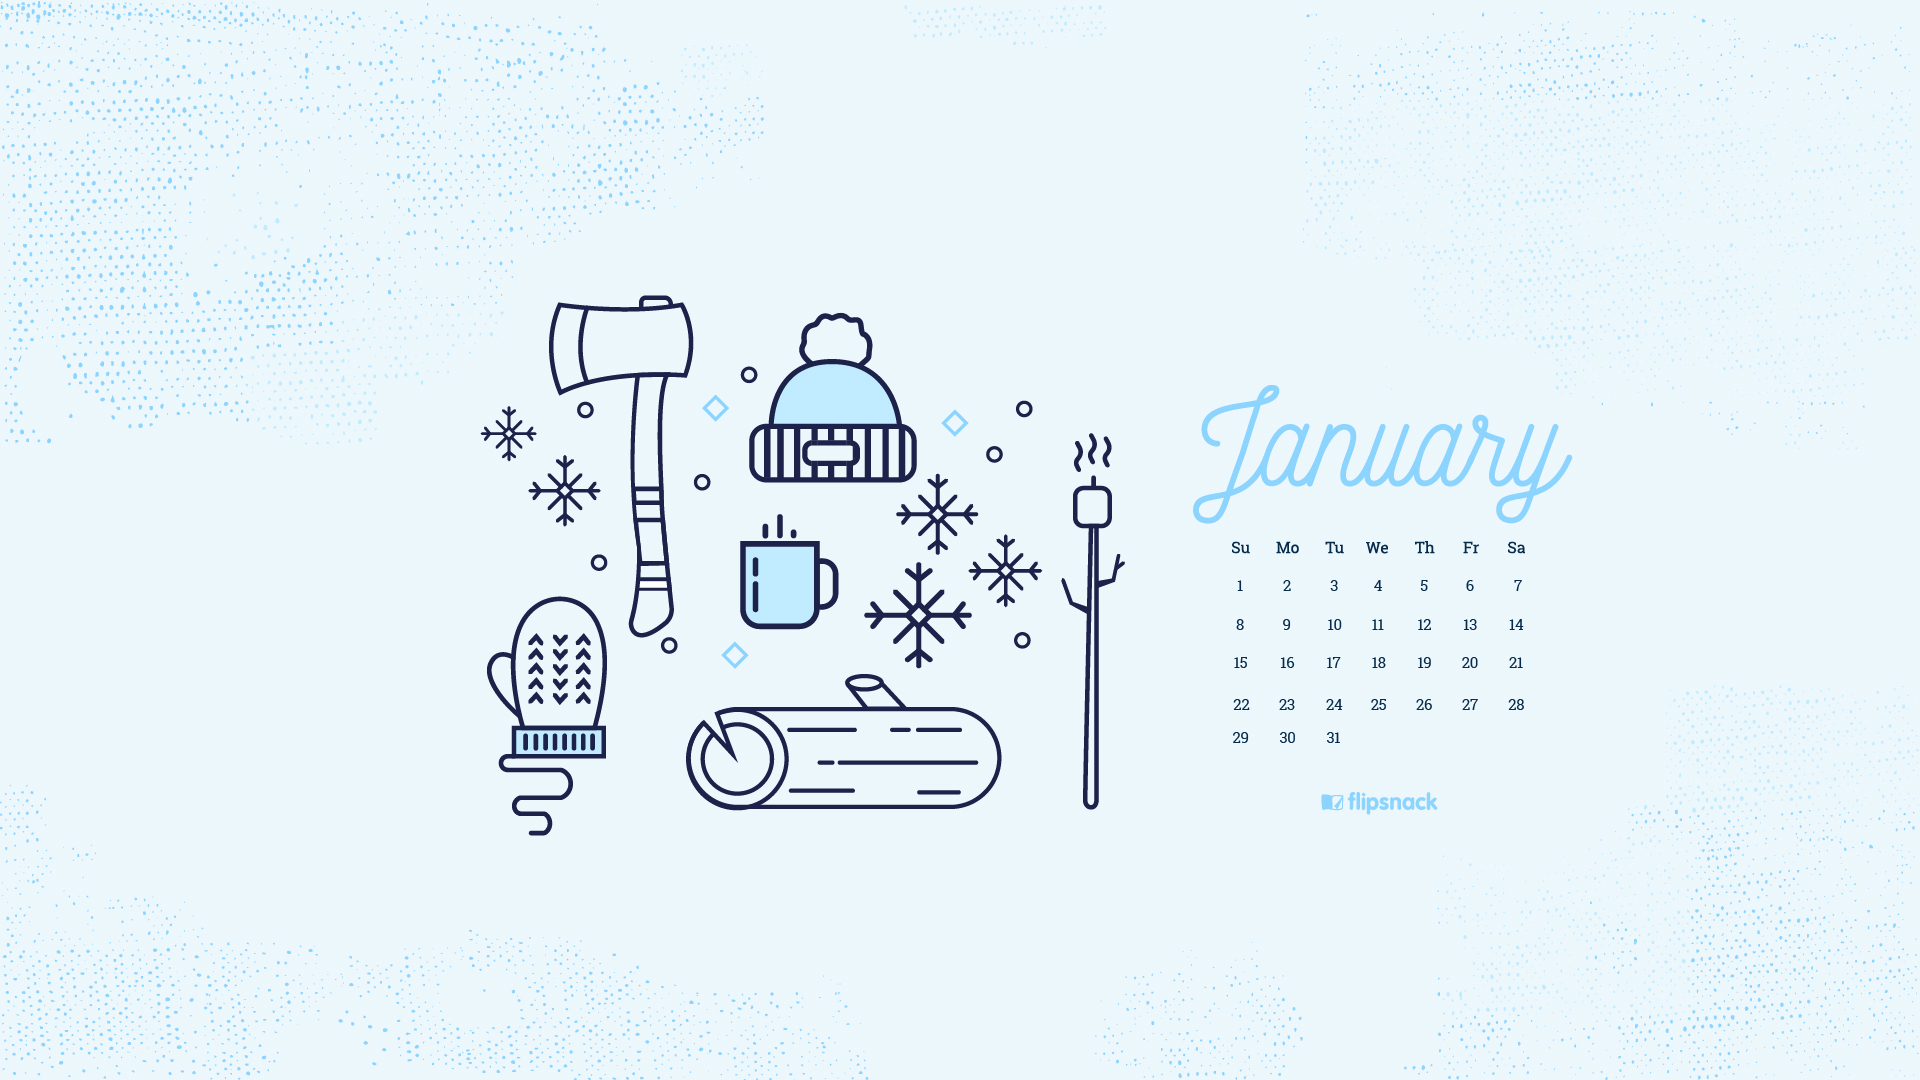 wallpaper calendar desktop background calendar january 2017 download calendar